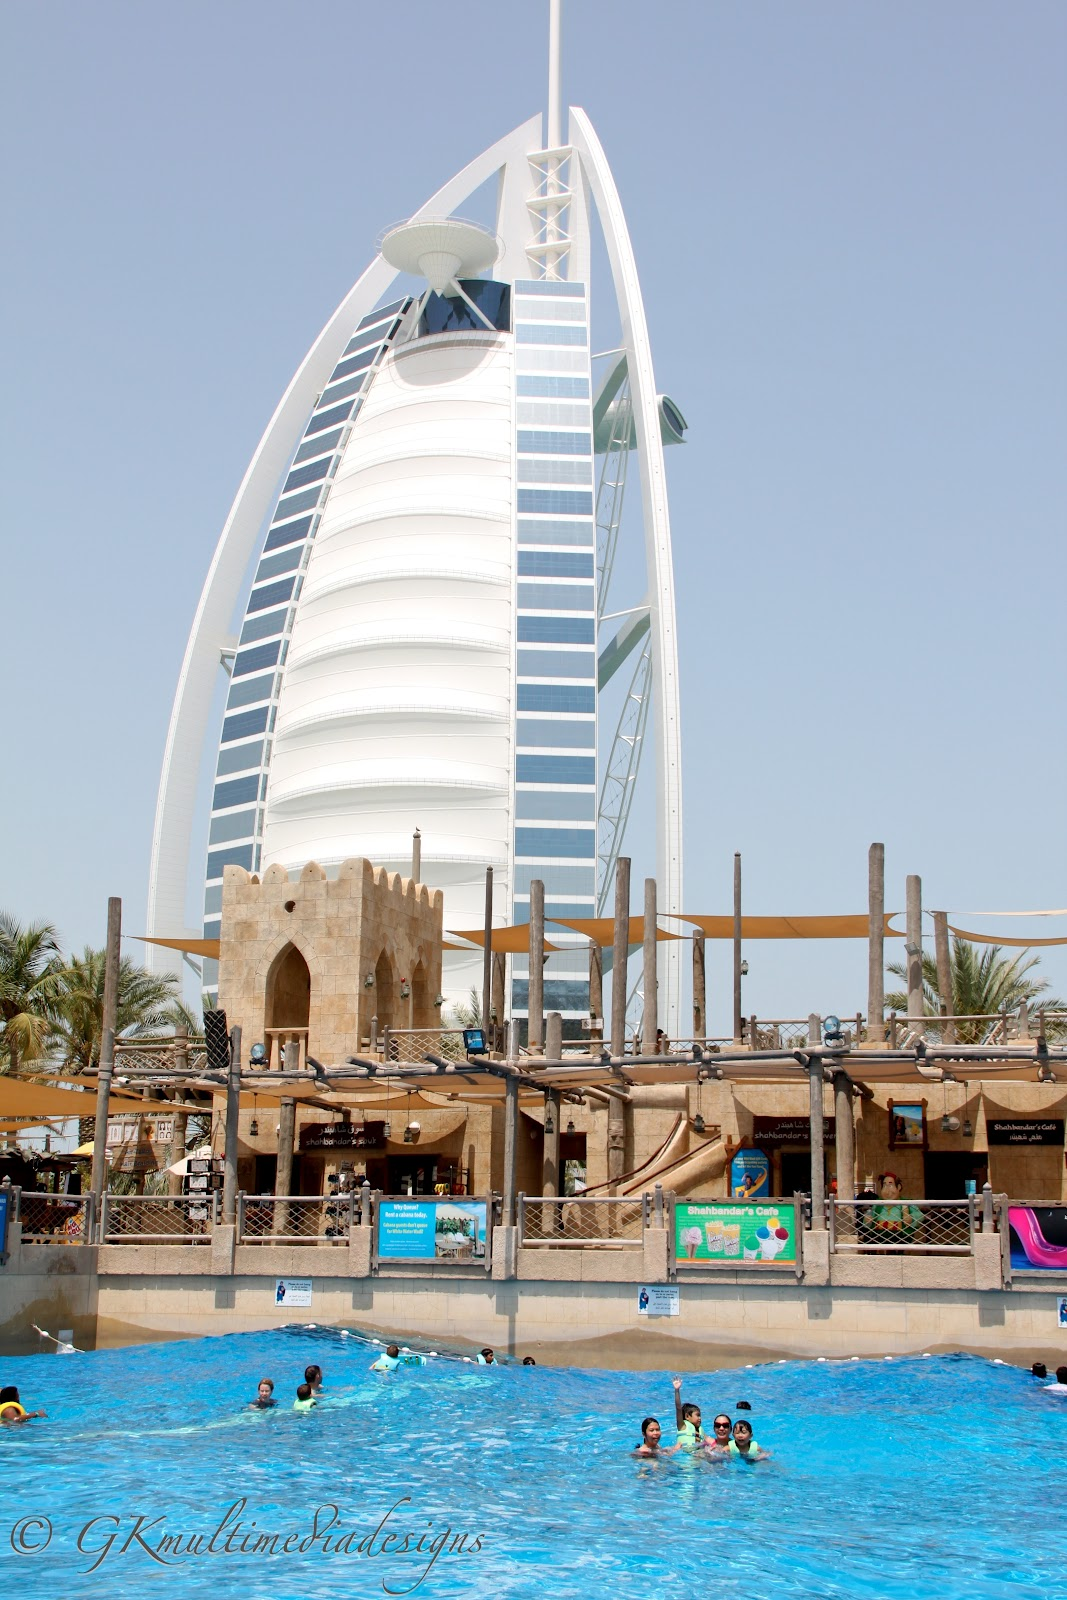 Anything Under The Sun Burj Al Arab A Seven Star Hotel